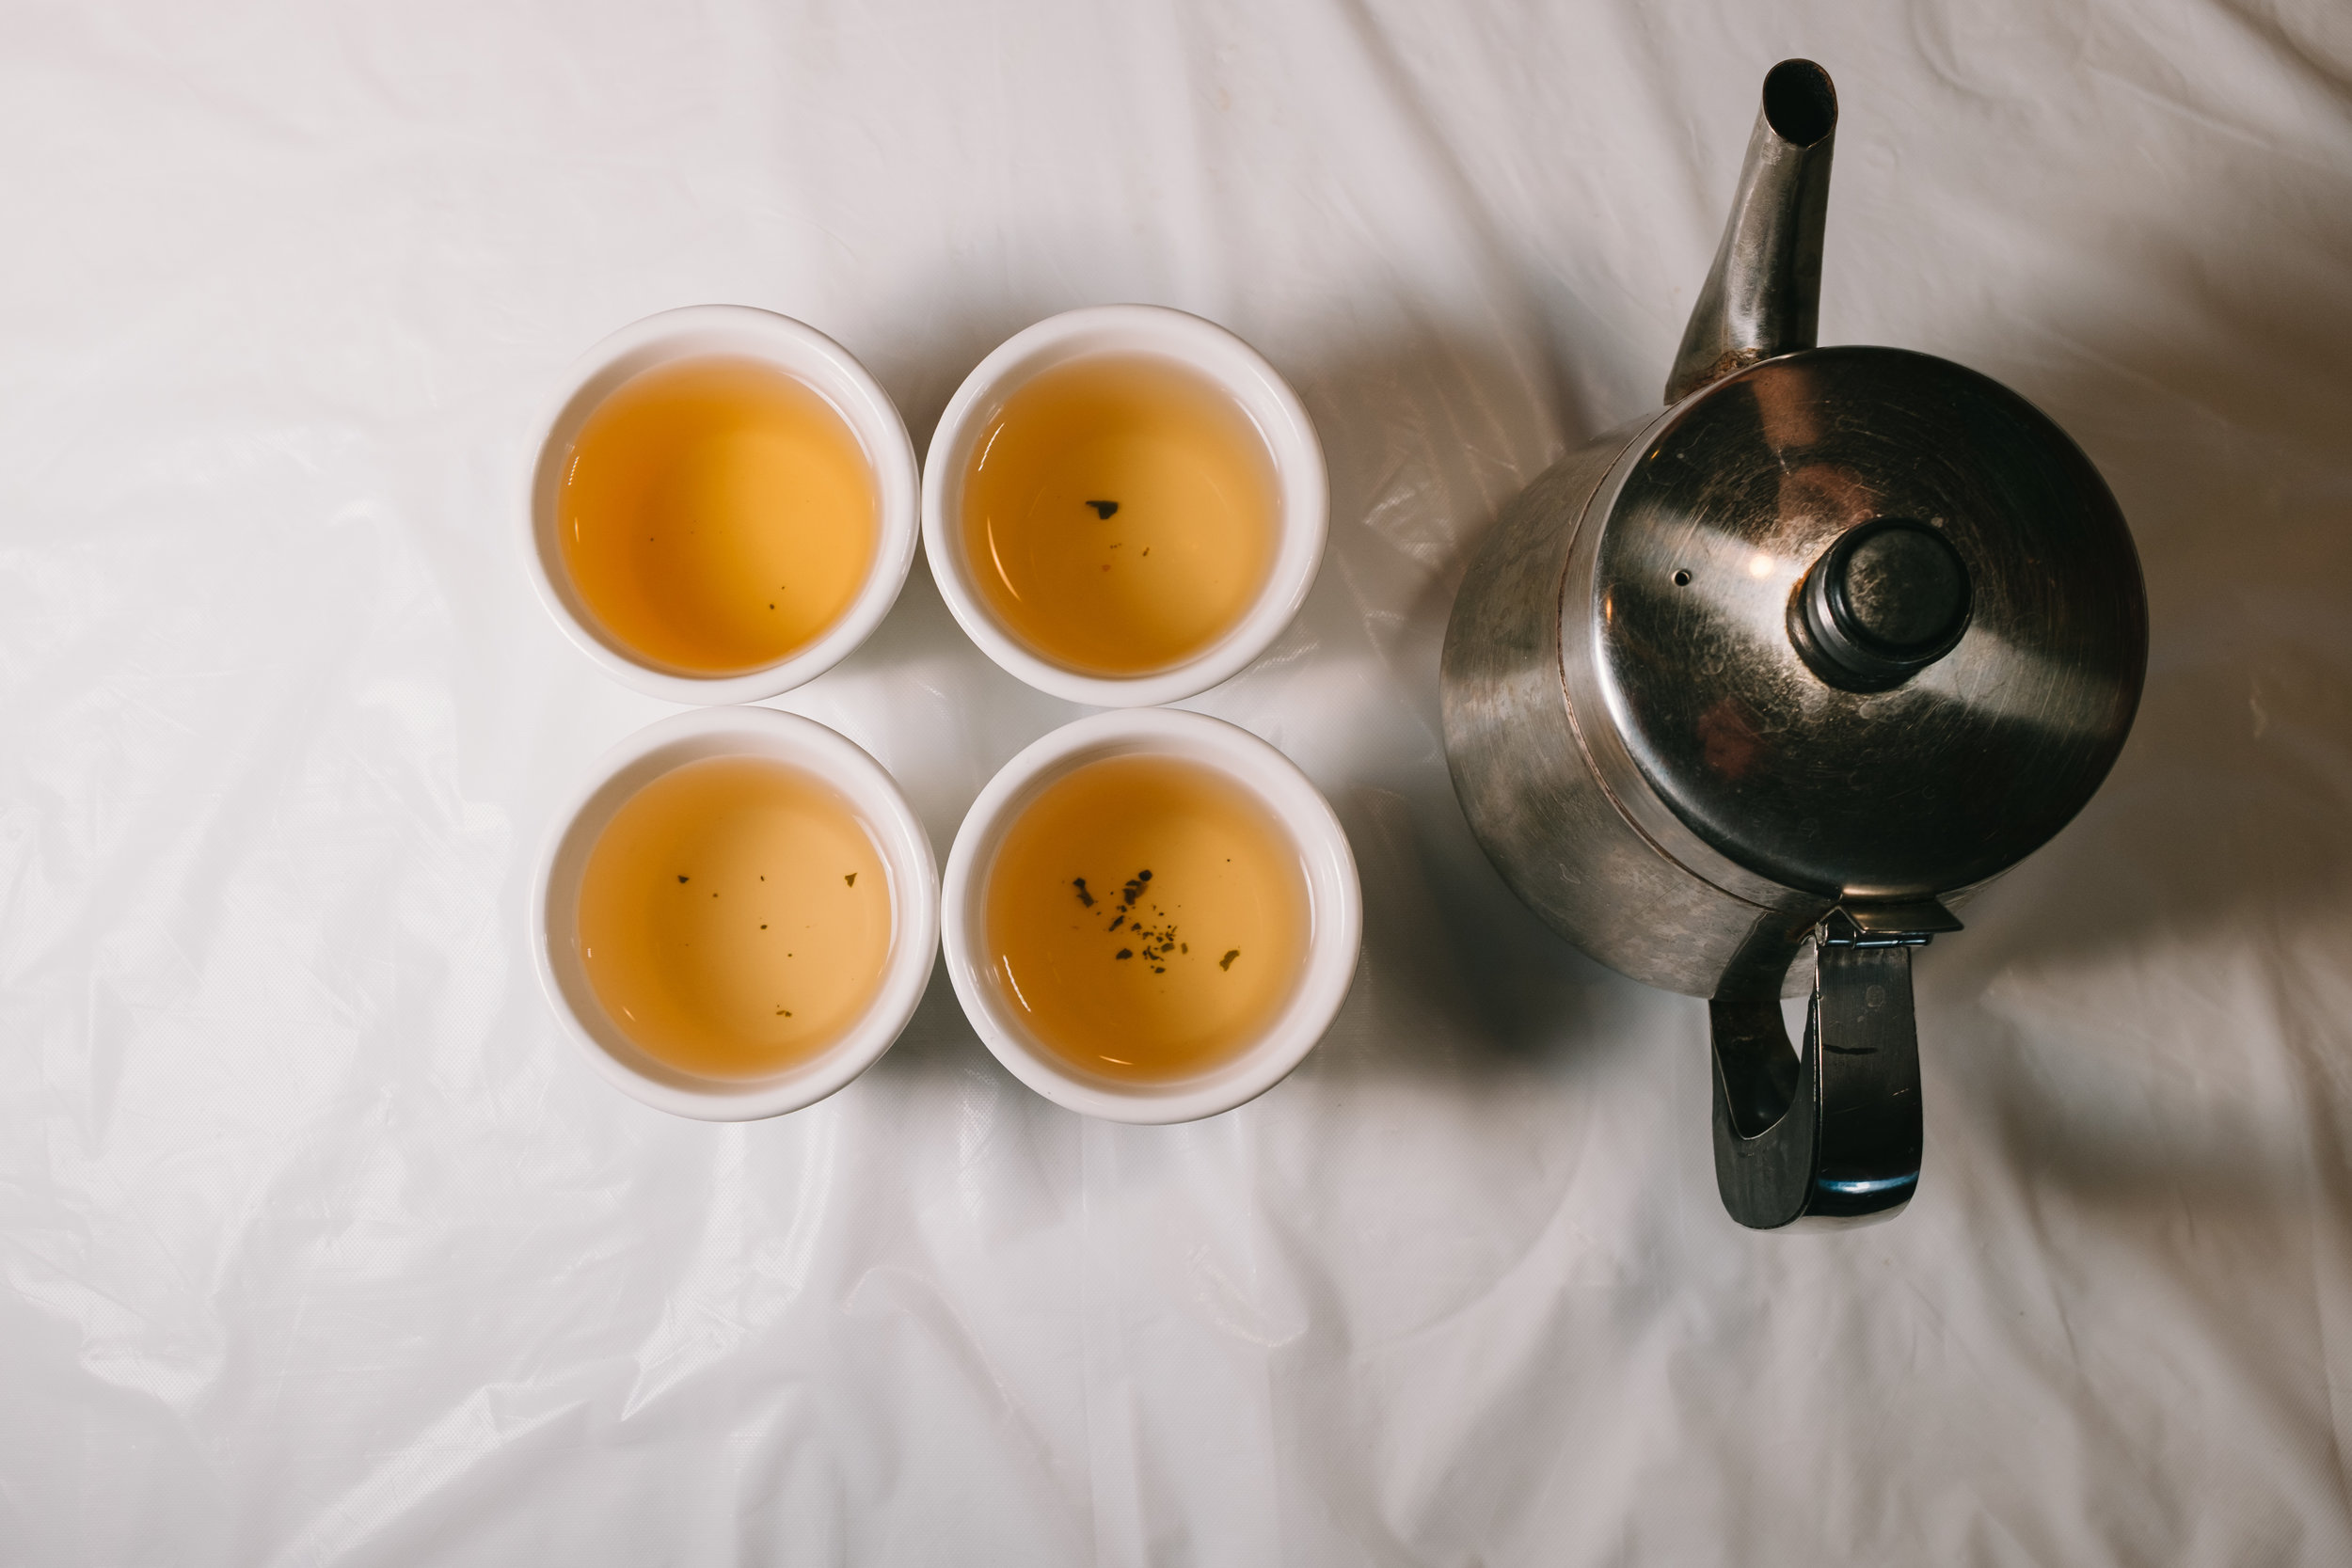 Tea is a integral part of the culinary scene in China. There are five main styles of tea. For anyone who takes a trip to China, a visit to a tea market is a must.